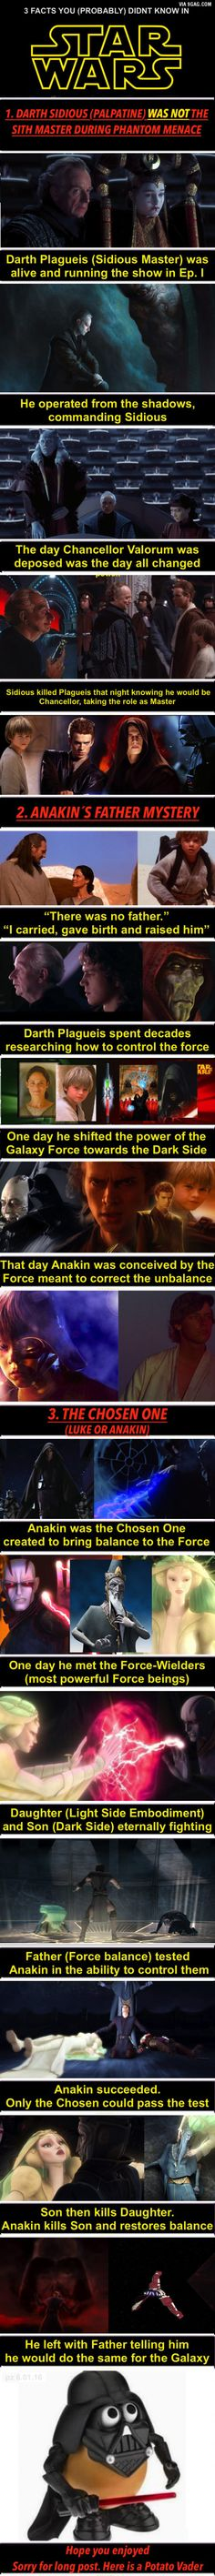 3 facts in Star Wars story you (probably) didn't know - Star Wars Funny - Funny Star Wars Meme - - 3 facts in Star Wars story you (probably) didn't know The post 3 facts in Star Wars story you (probably) didn't know appeared first on Gag Dad. Star Wars Rebels, Star Trek, Star Wars Facts, Star Wars Humor, Beatles, Starwars, Devon, The Force Is Strong, Chef D Oeuvre